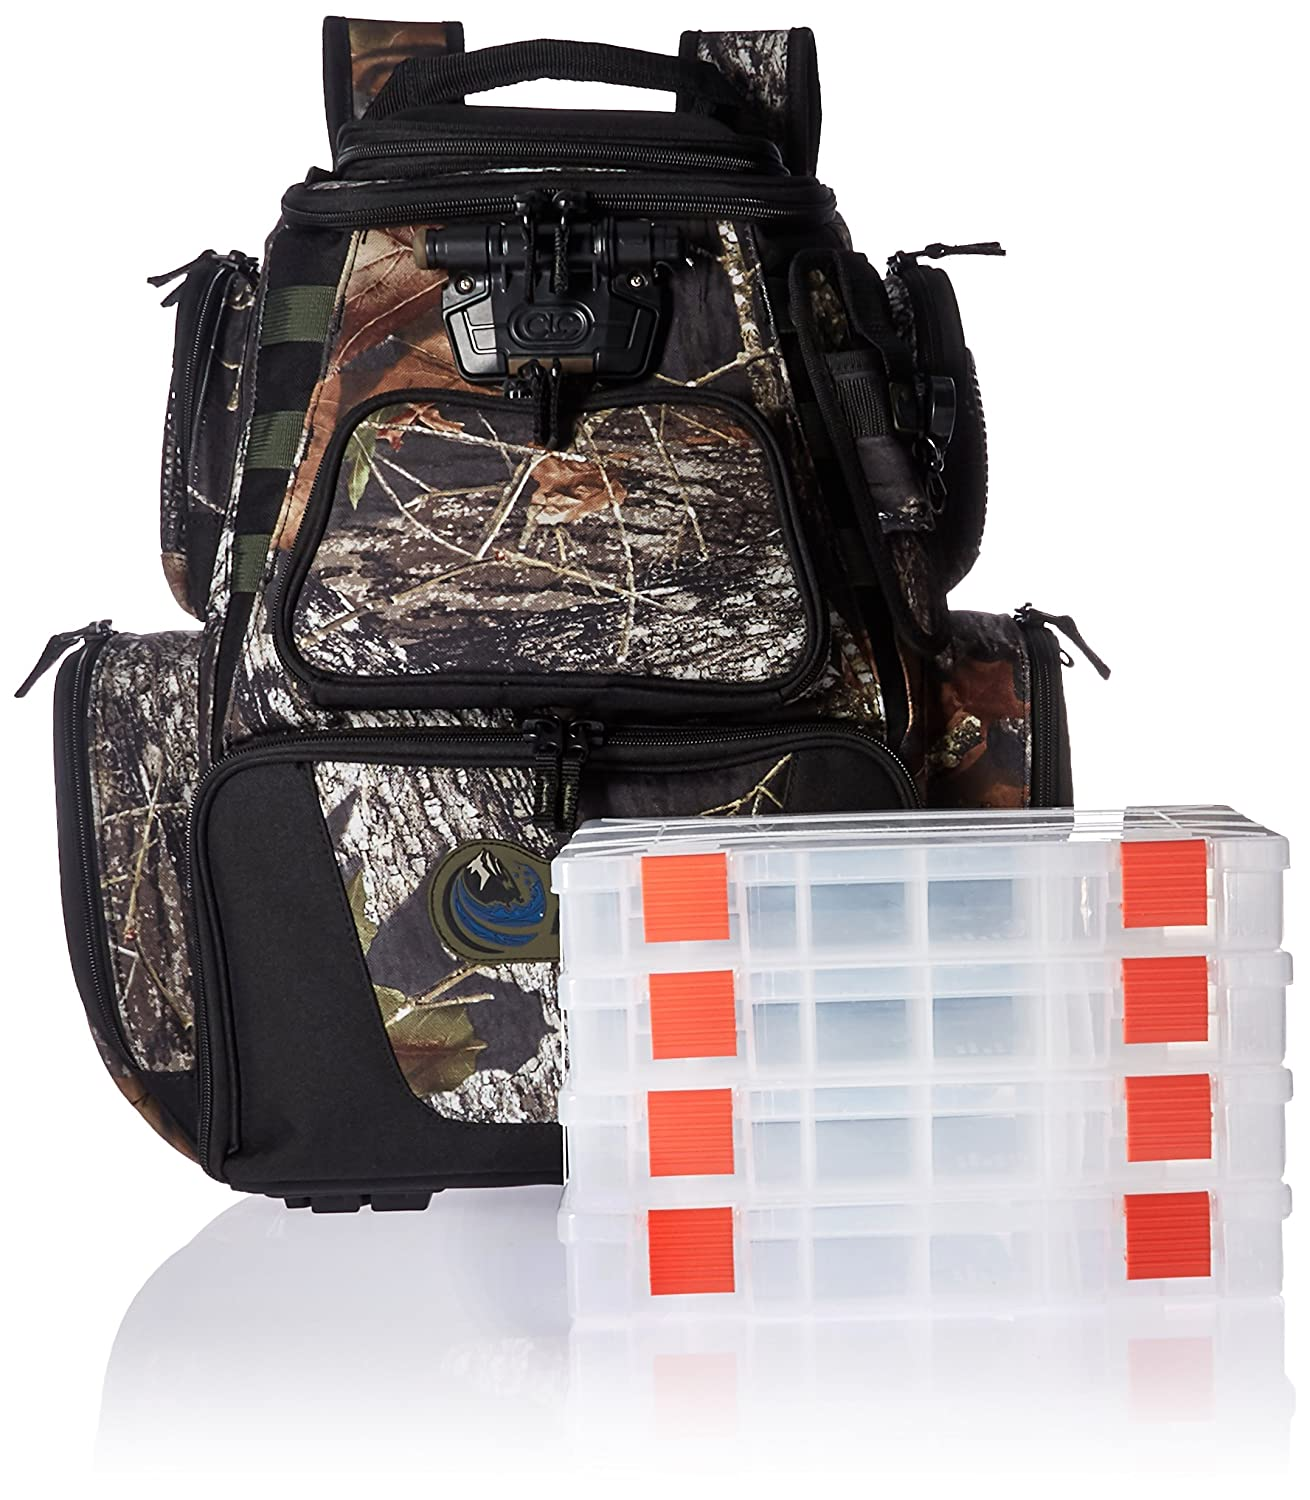 Icefishingdeals Your Fishing Equipment Hot Spot Outdoor Products Square Backpack Abu If Youre Looking For The Ultimate Year Round Tool Check Out Wild River Nomad Over On Amazon Cyber Monday Deals Week